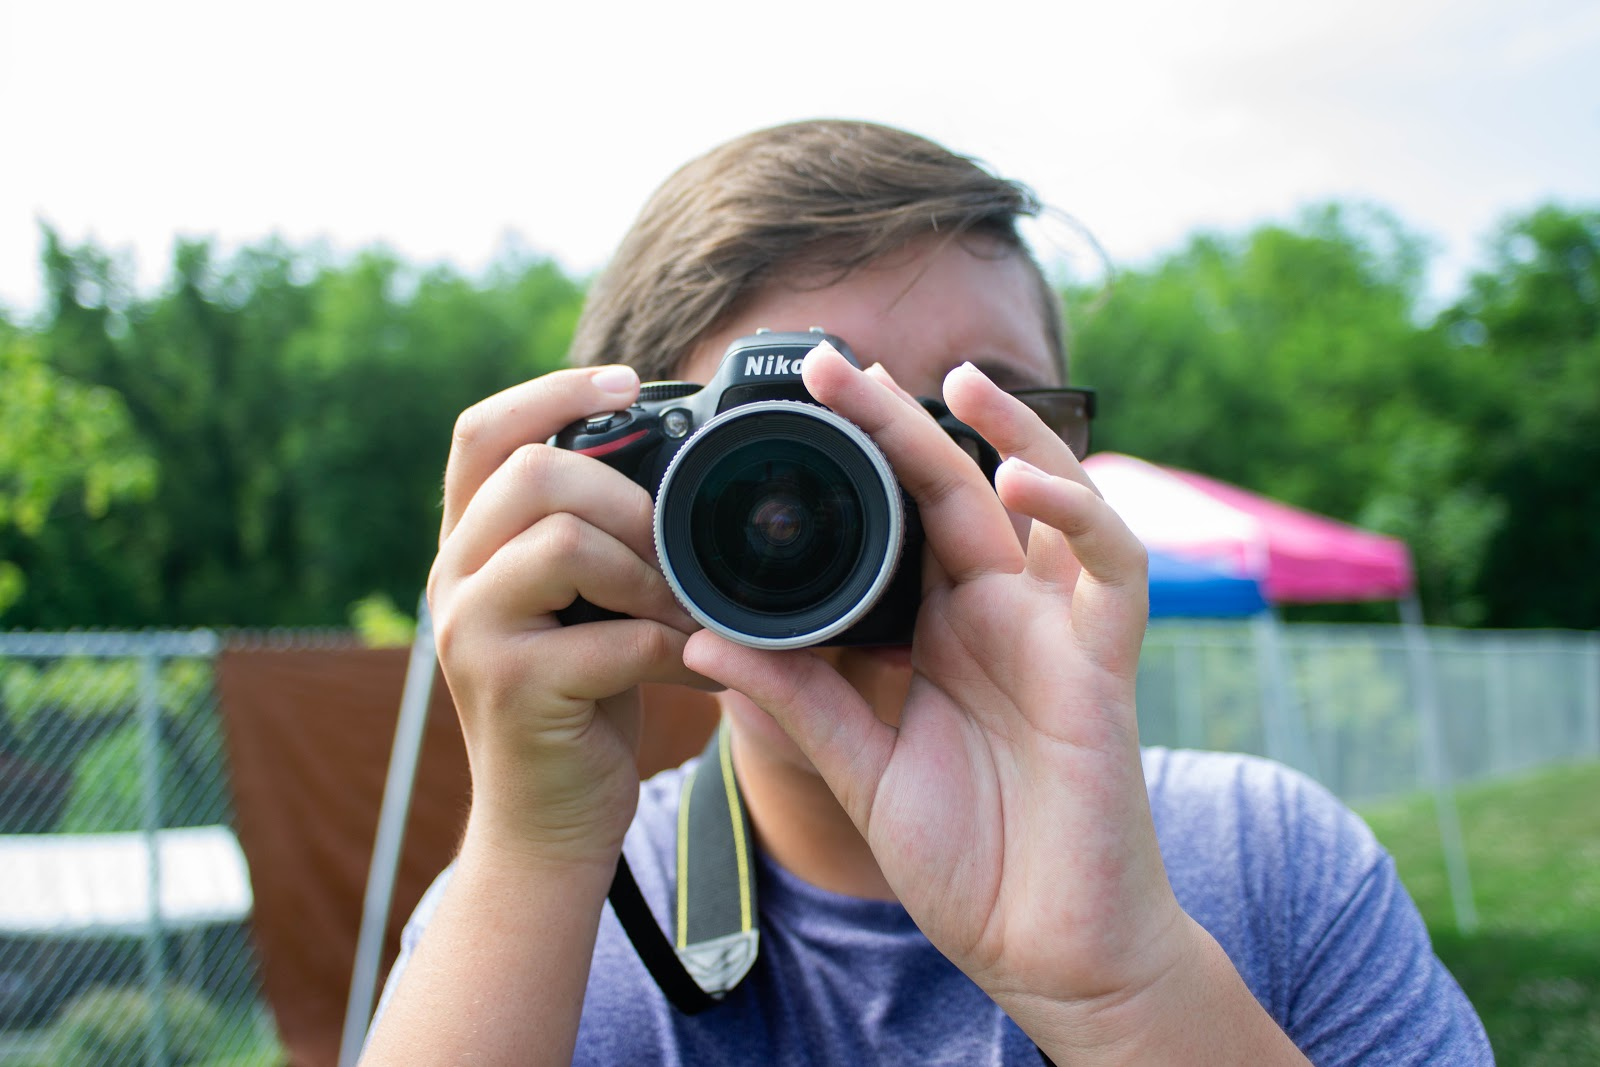 Employee Logan Rast entered the WorkWell program with no experience in photography and now has learned how to operate a professional camera!